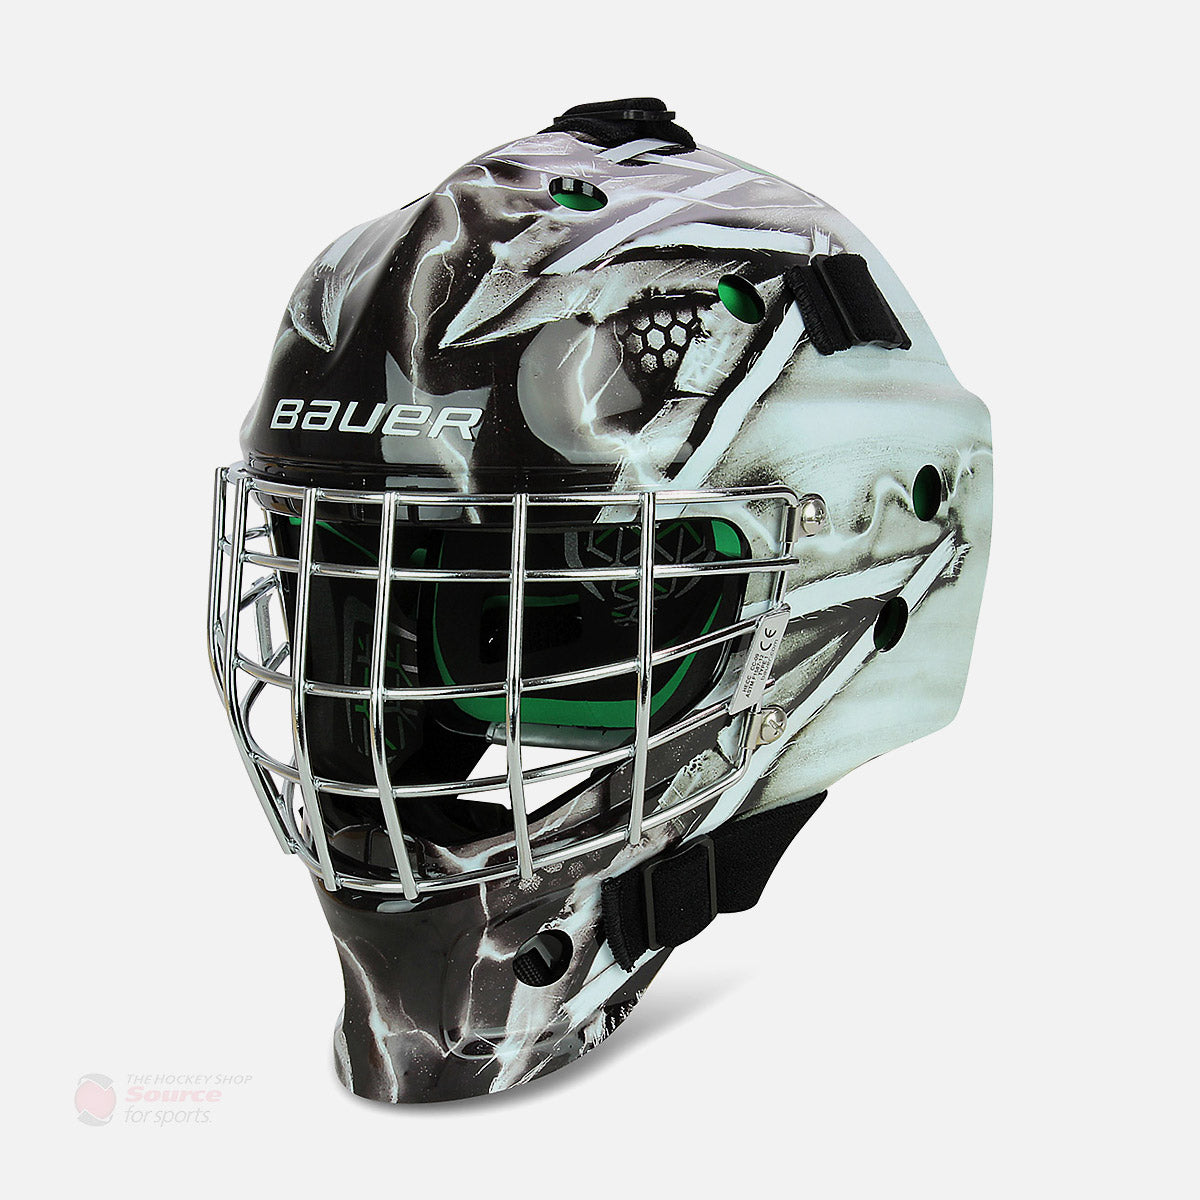 Bauer NME 4 Youth Goalie Mask - Los Angeles Kings